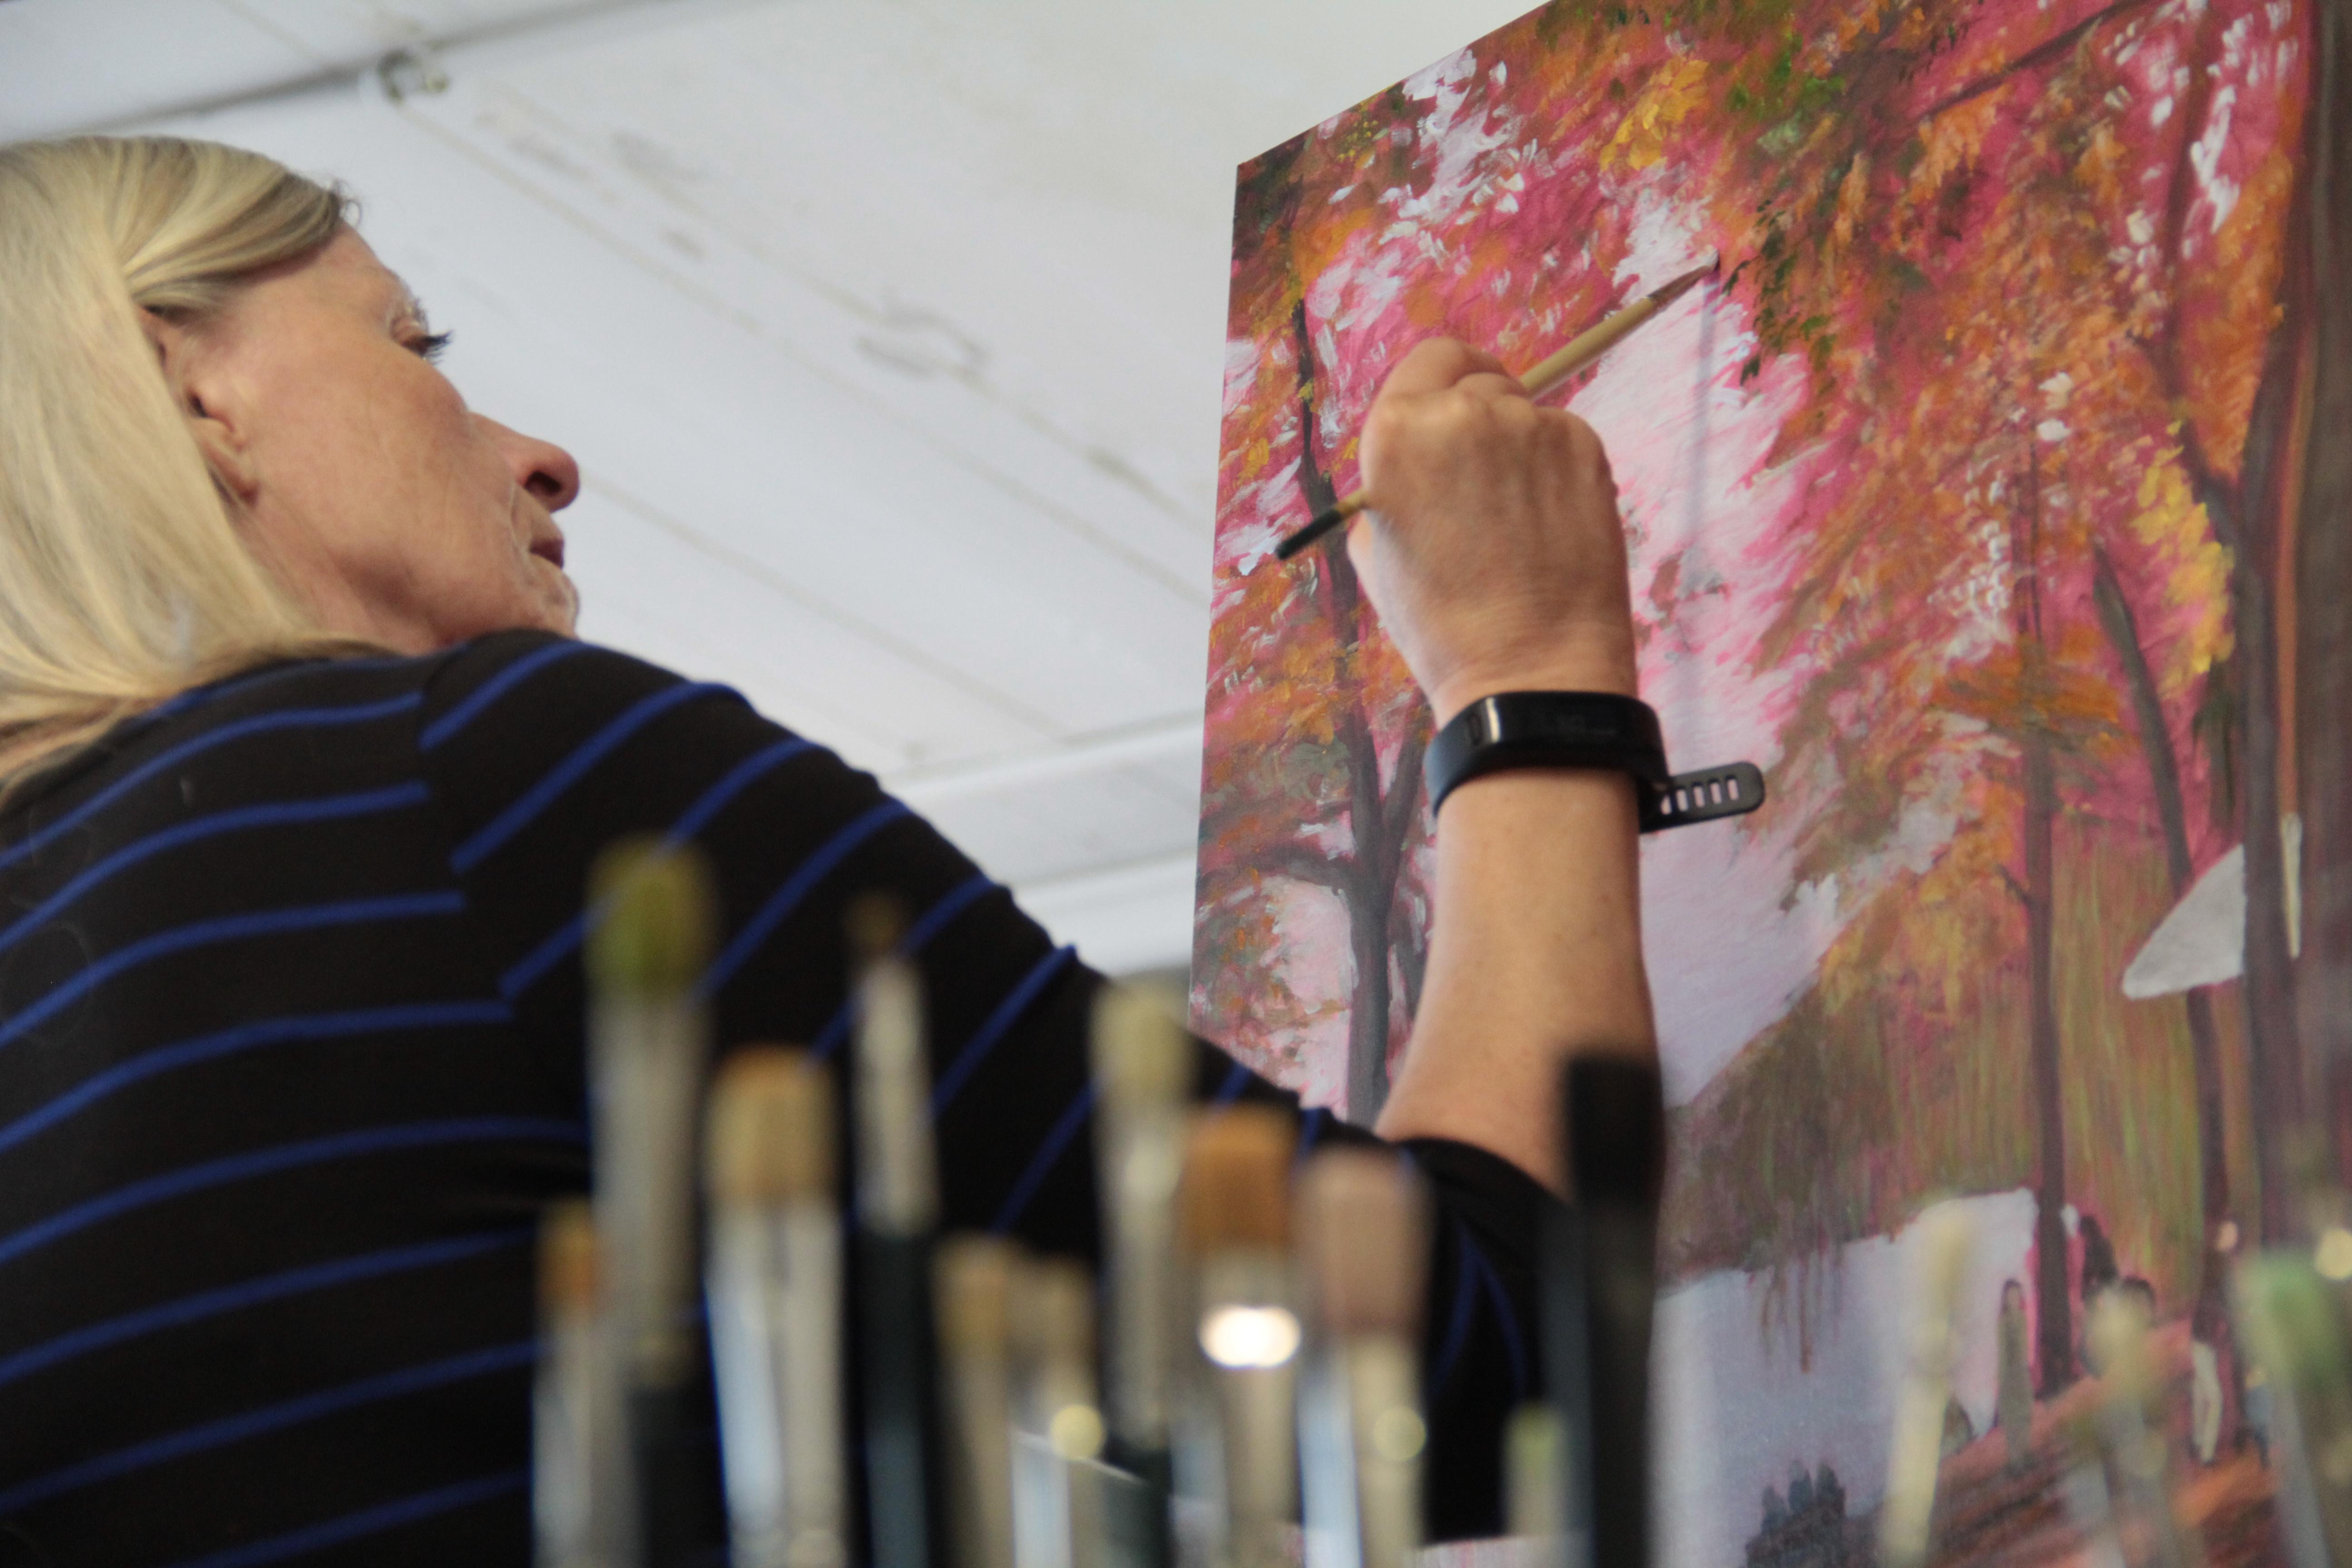 There is something for everybody at this Alexandria-based studio. From watercolors to stained glass, weaving or basic drawing, there is a seemingly never-ending list of ways to expand your creative horizons.(Image: Courtesy The Art League)